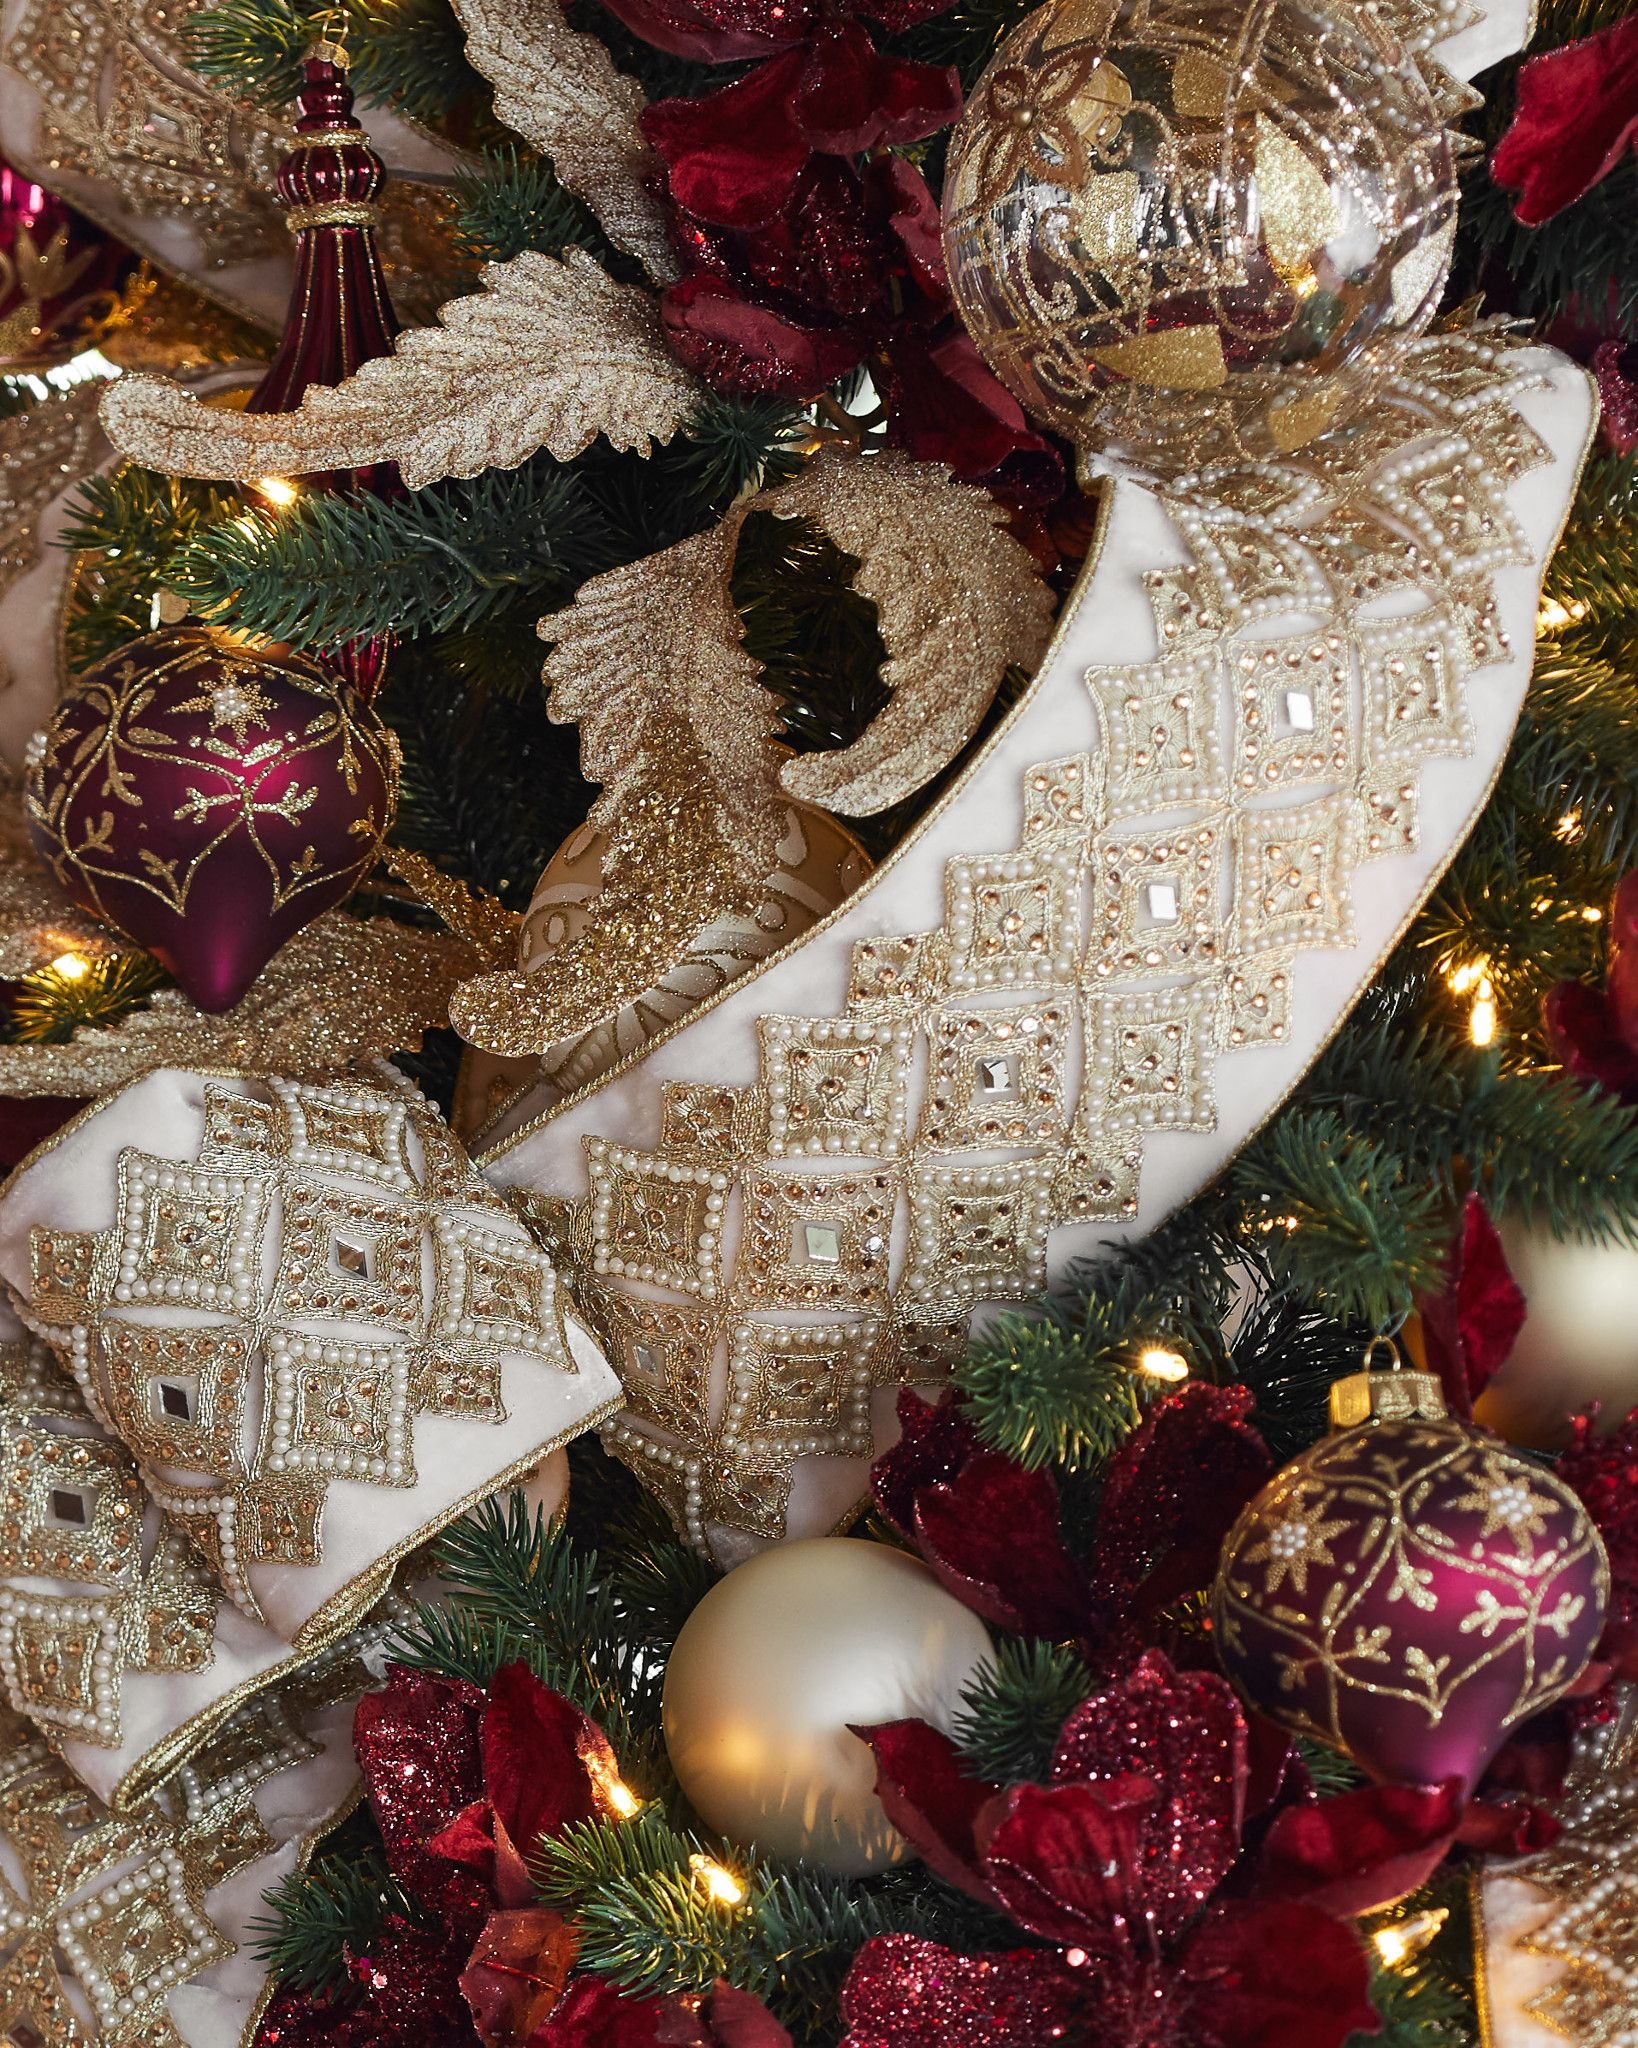 5inx5 Yards Biltmore Gilded Ribbon By Balsam Hill Specialty Christmas Tree